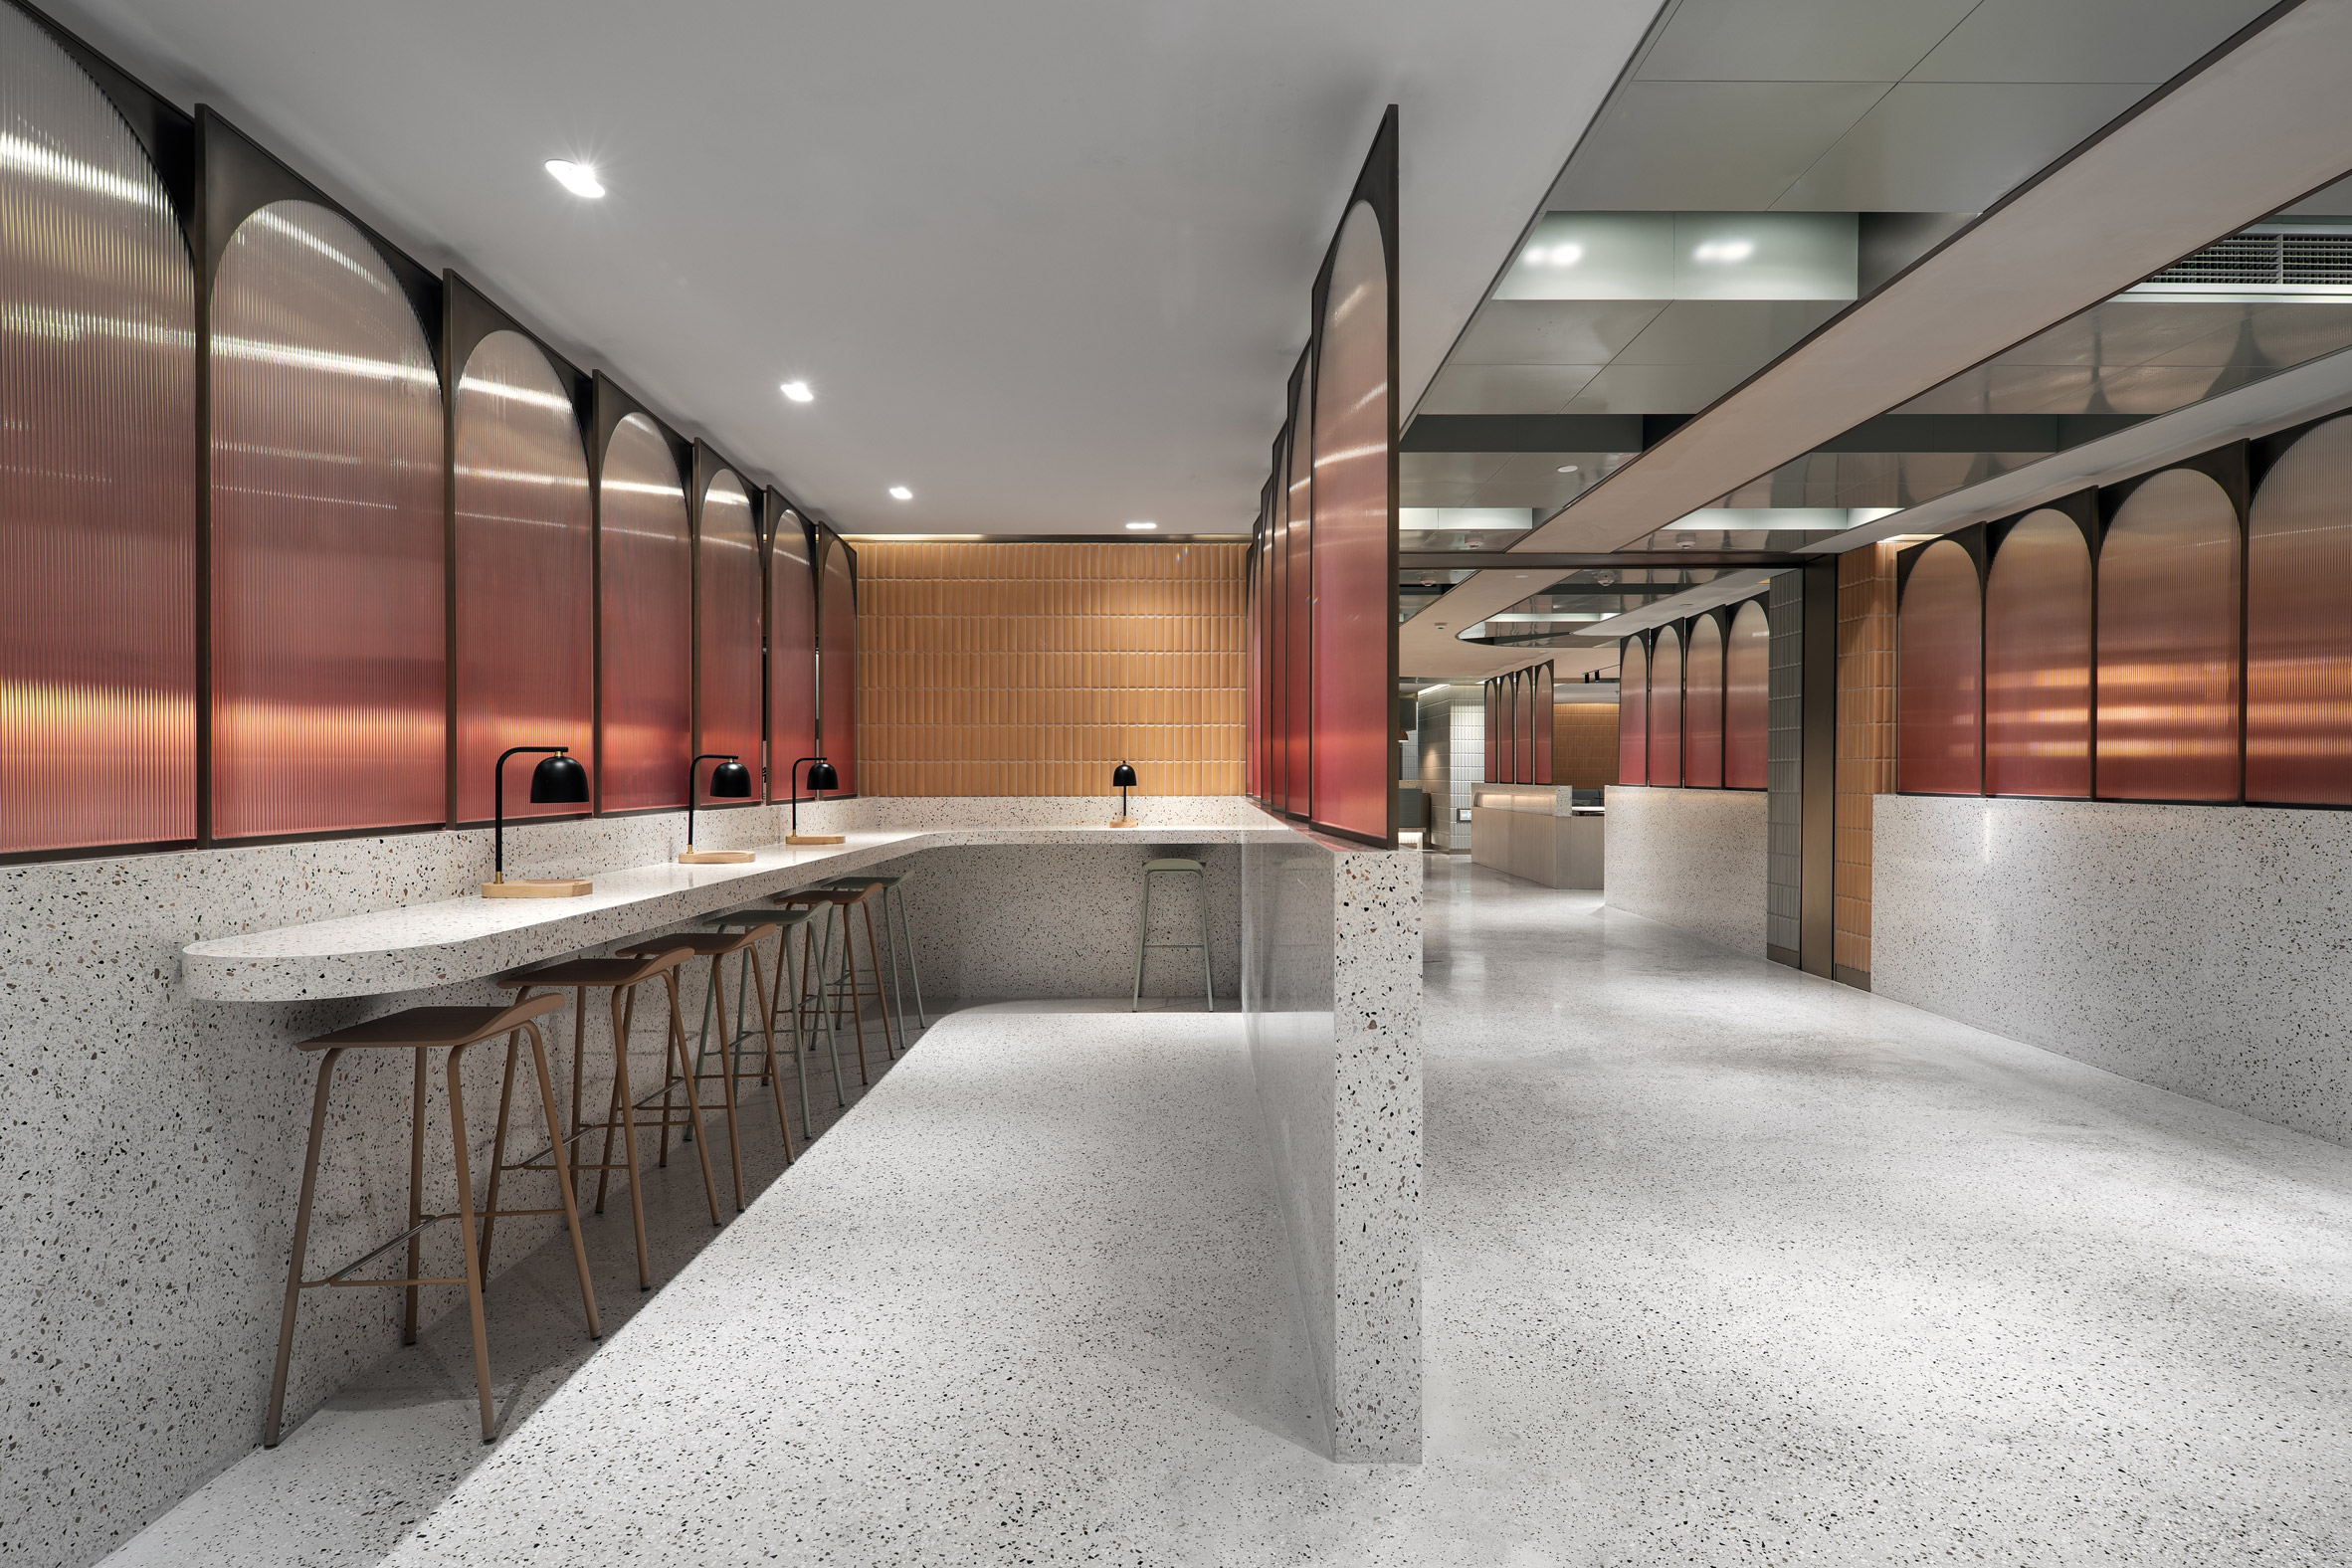 Canteen by SHH with terrazzo counter seating, terracotta tiles and ombre glass